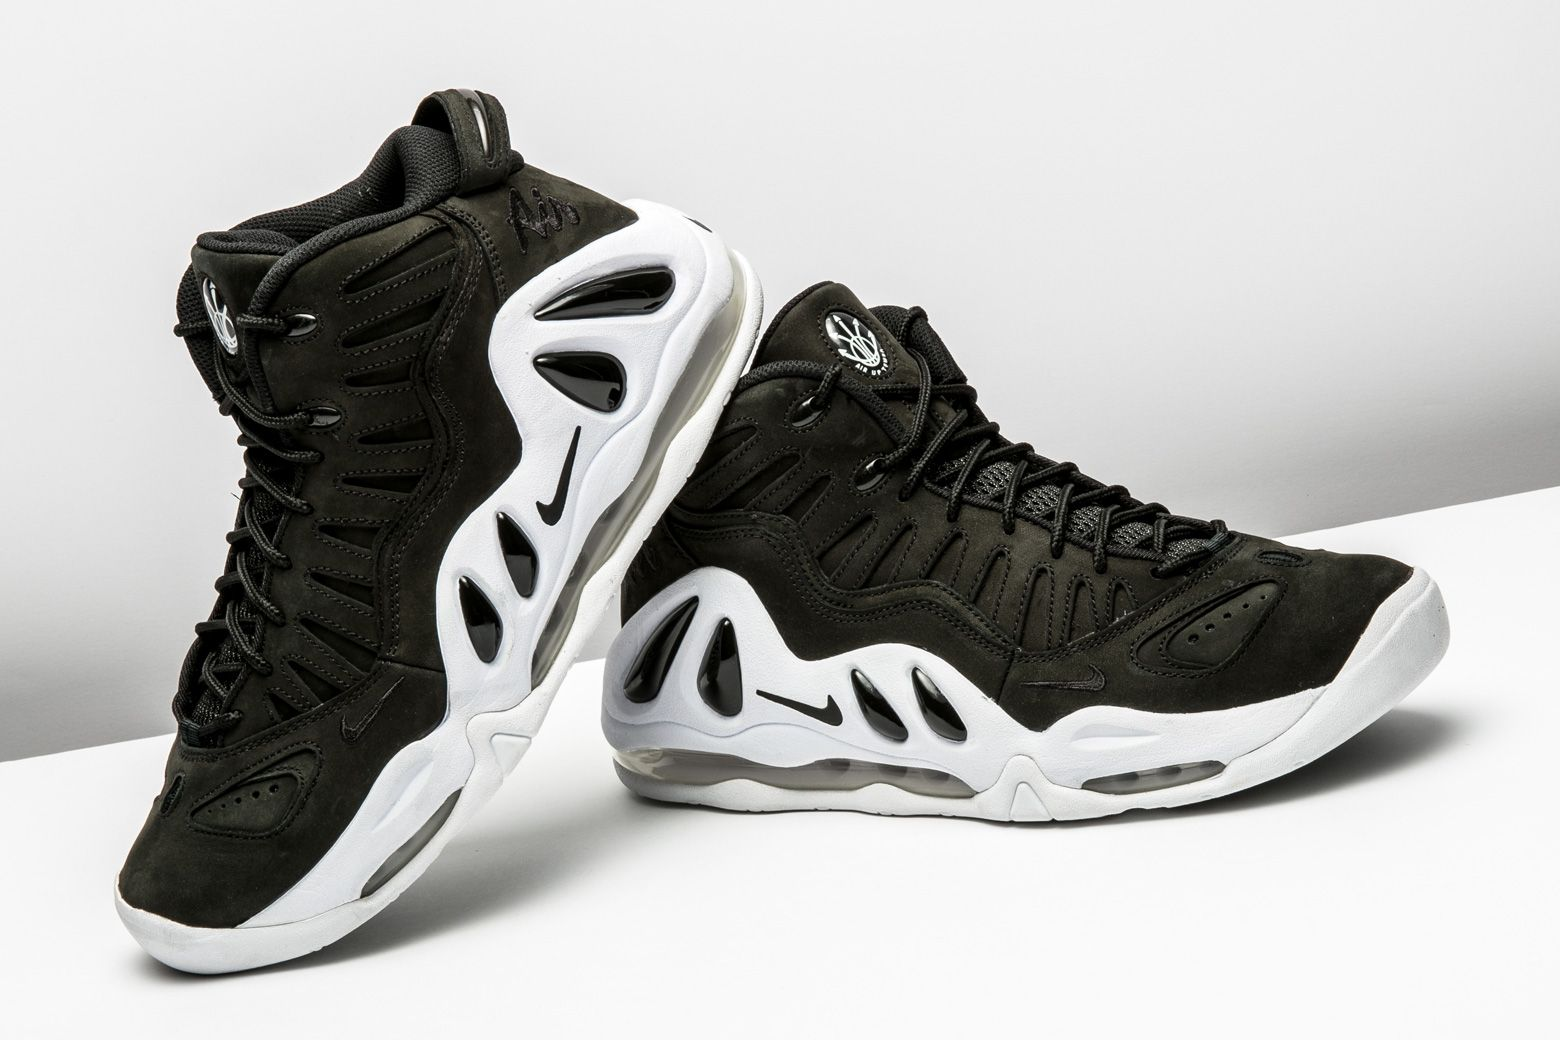 hot sale online ccdfb 6f3a8 Nike Air Max Uptempo 97 - 399207 004. Retro Basketball Shoes ...